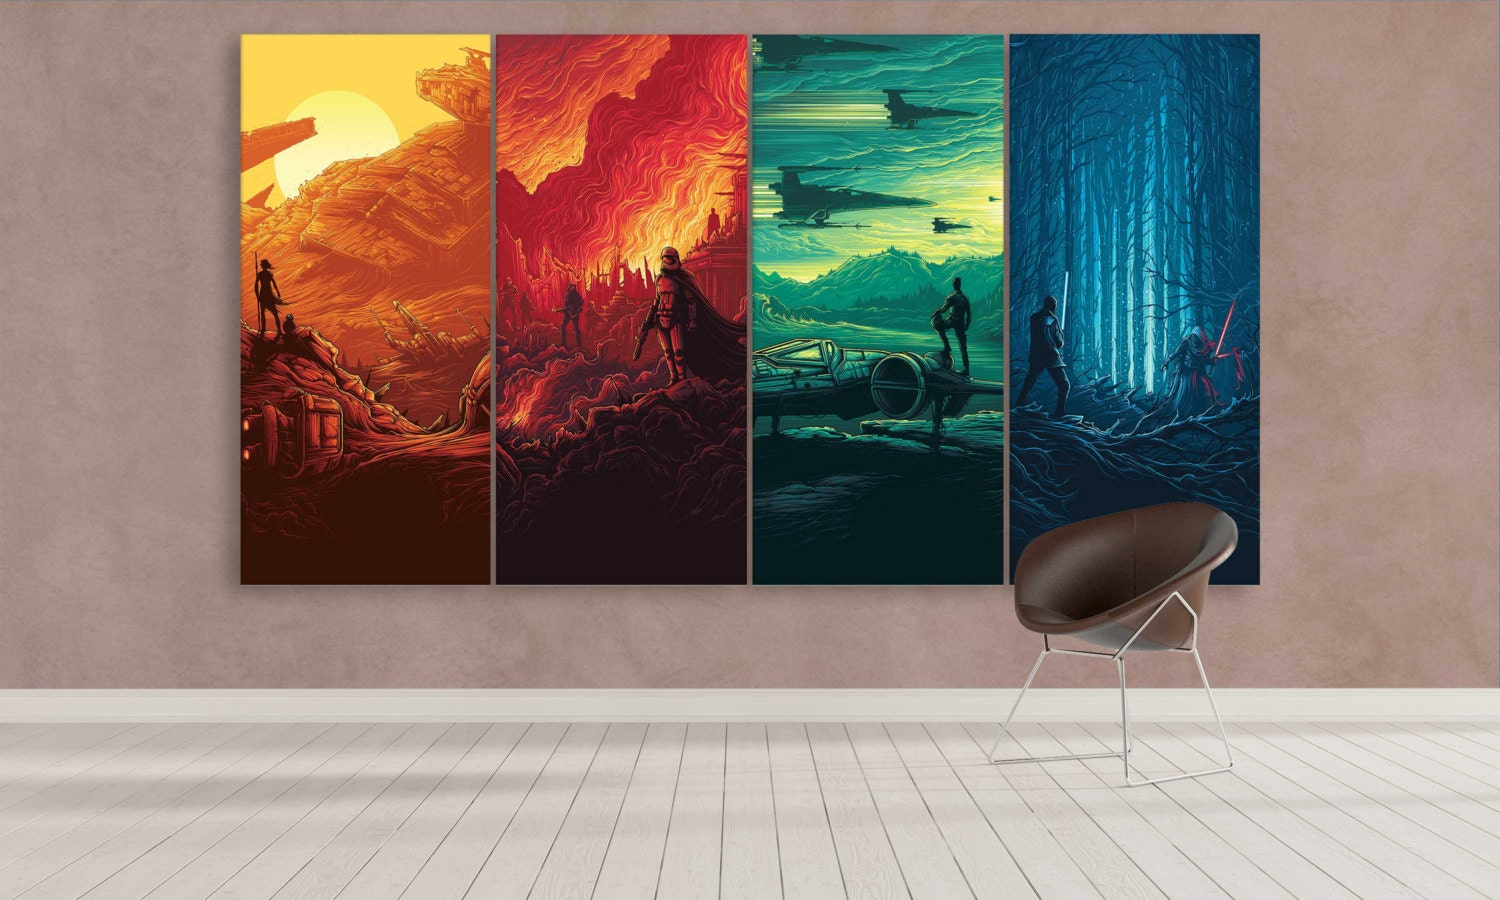 Star wars wall decor canvas : Extra large star wars canvas art panel wall by